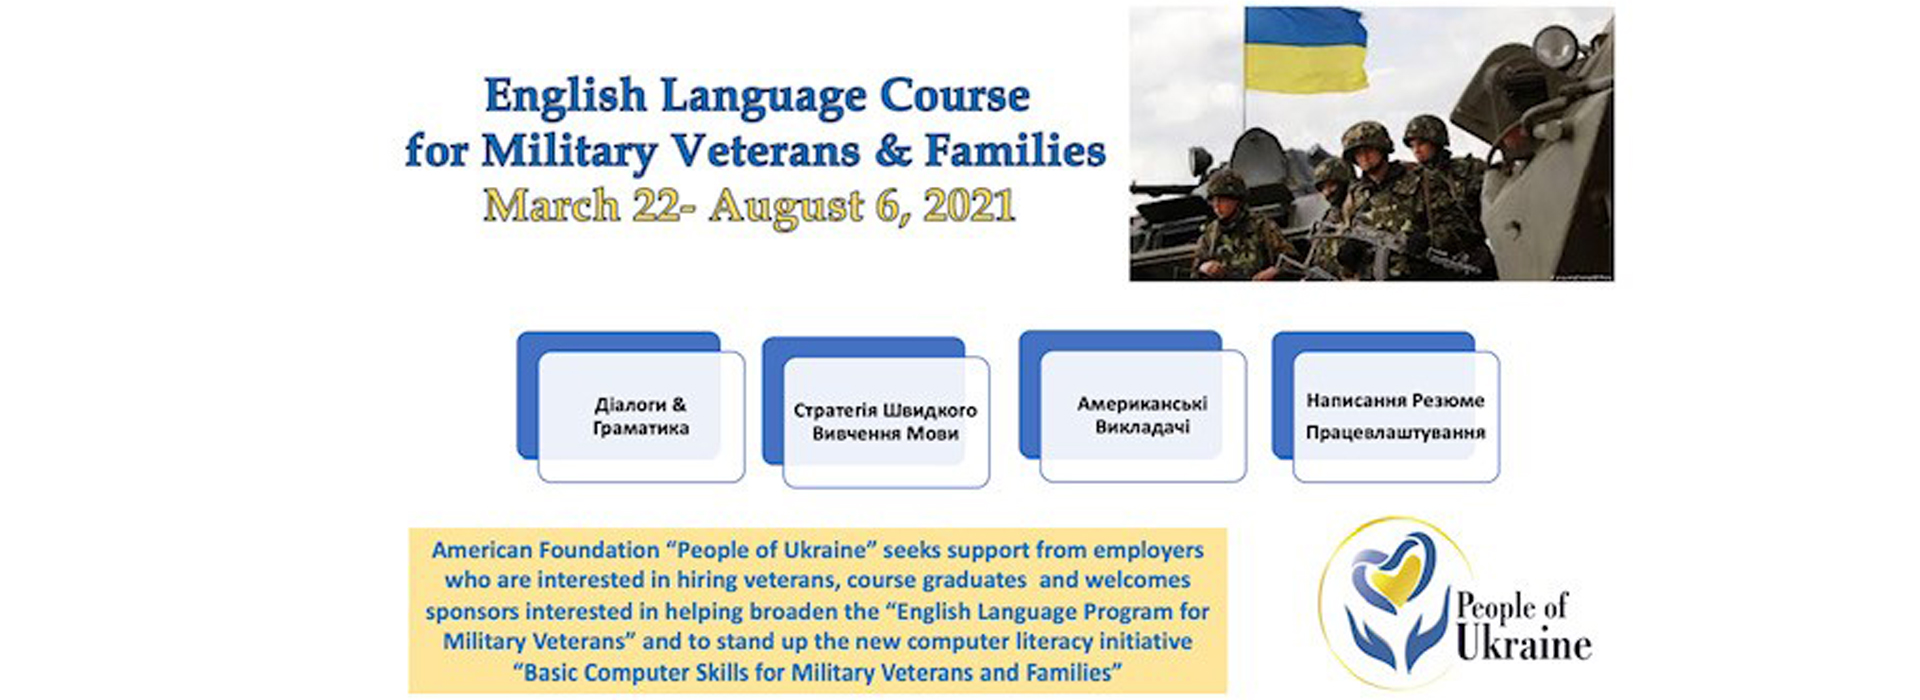 English Language Course for Military Veterans & Families